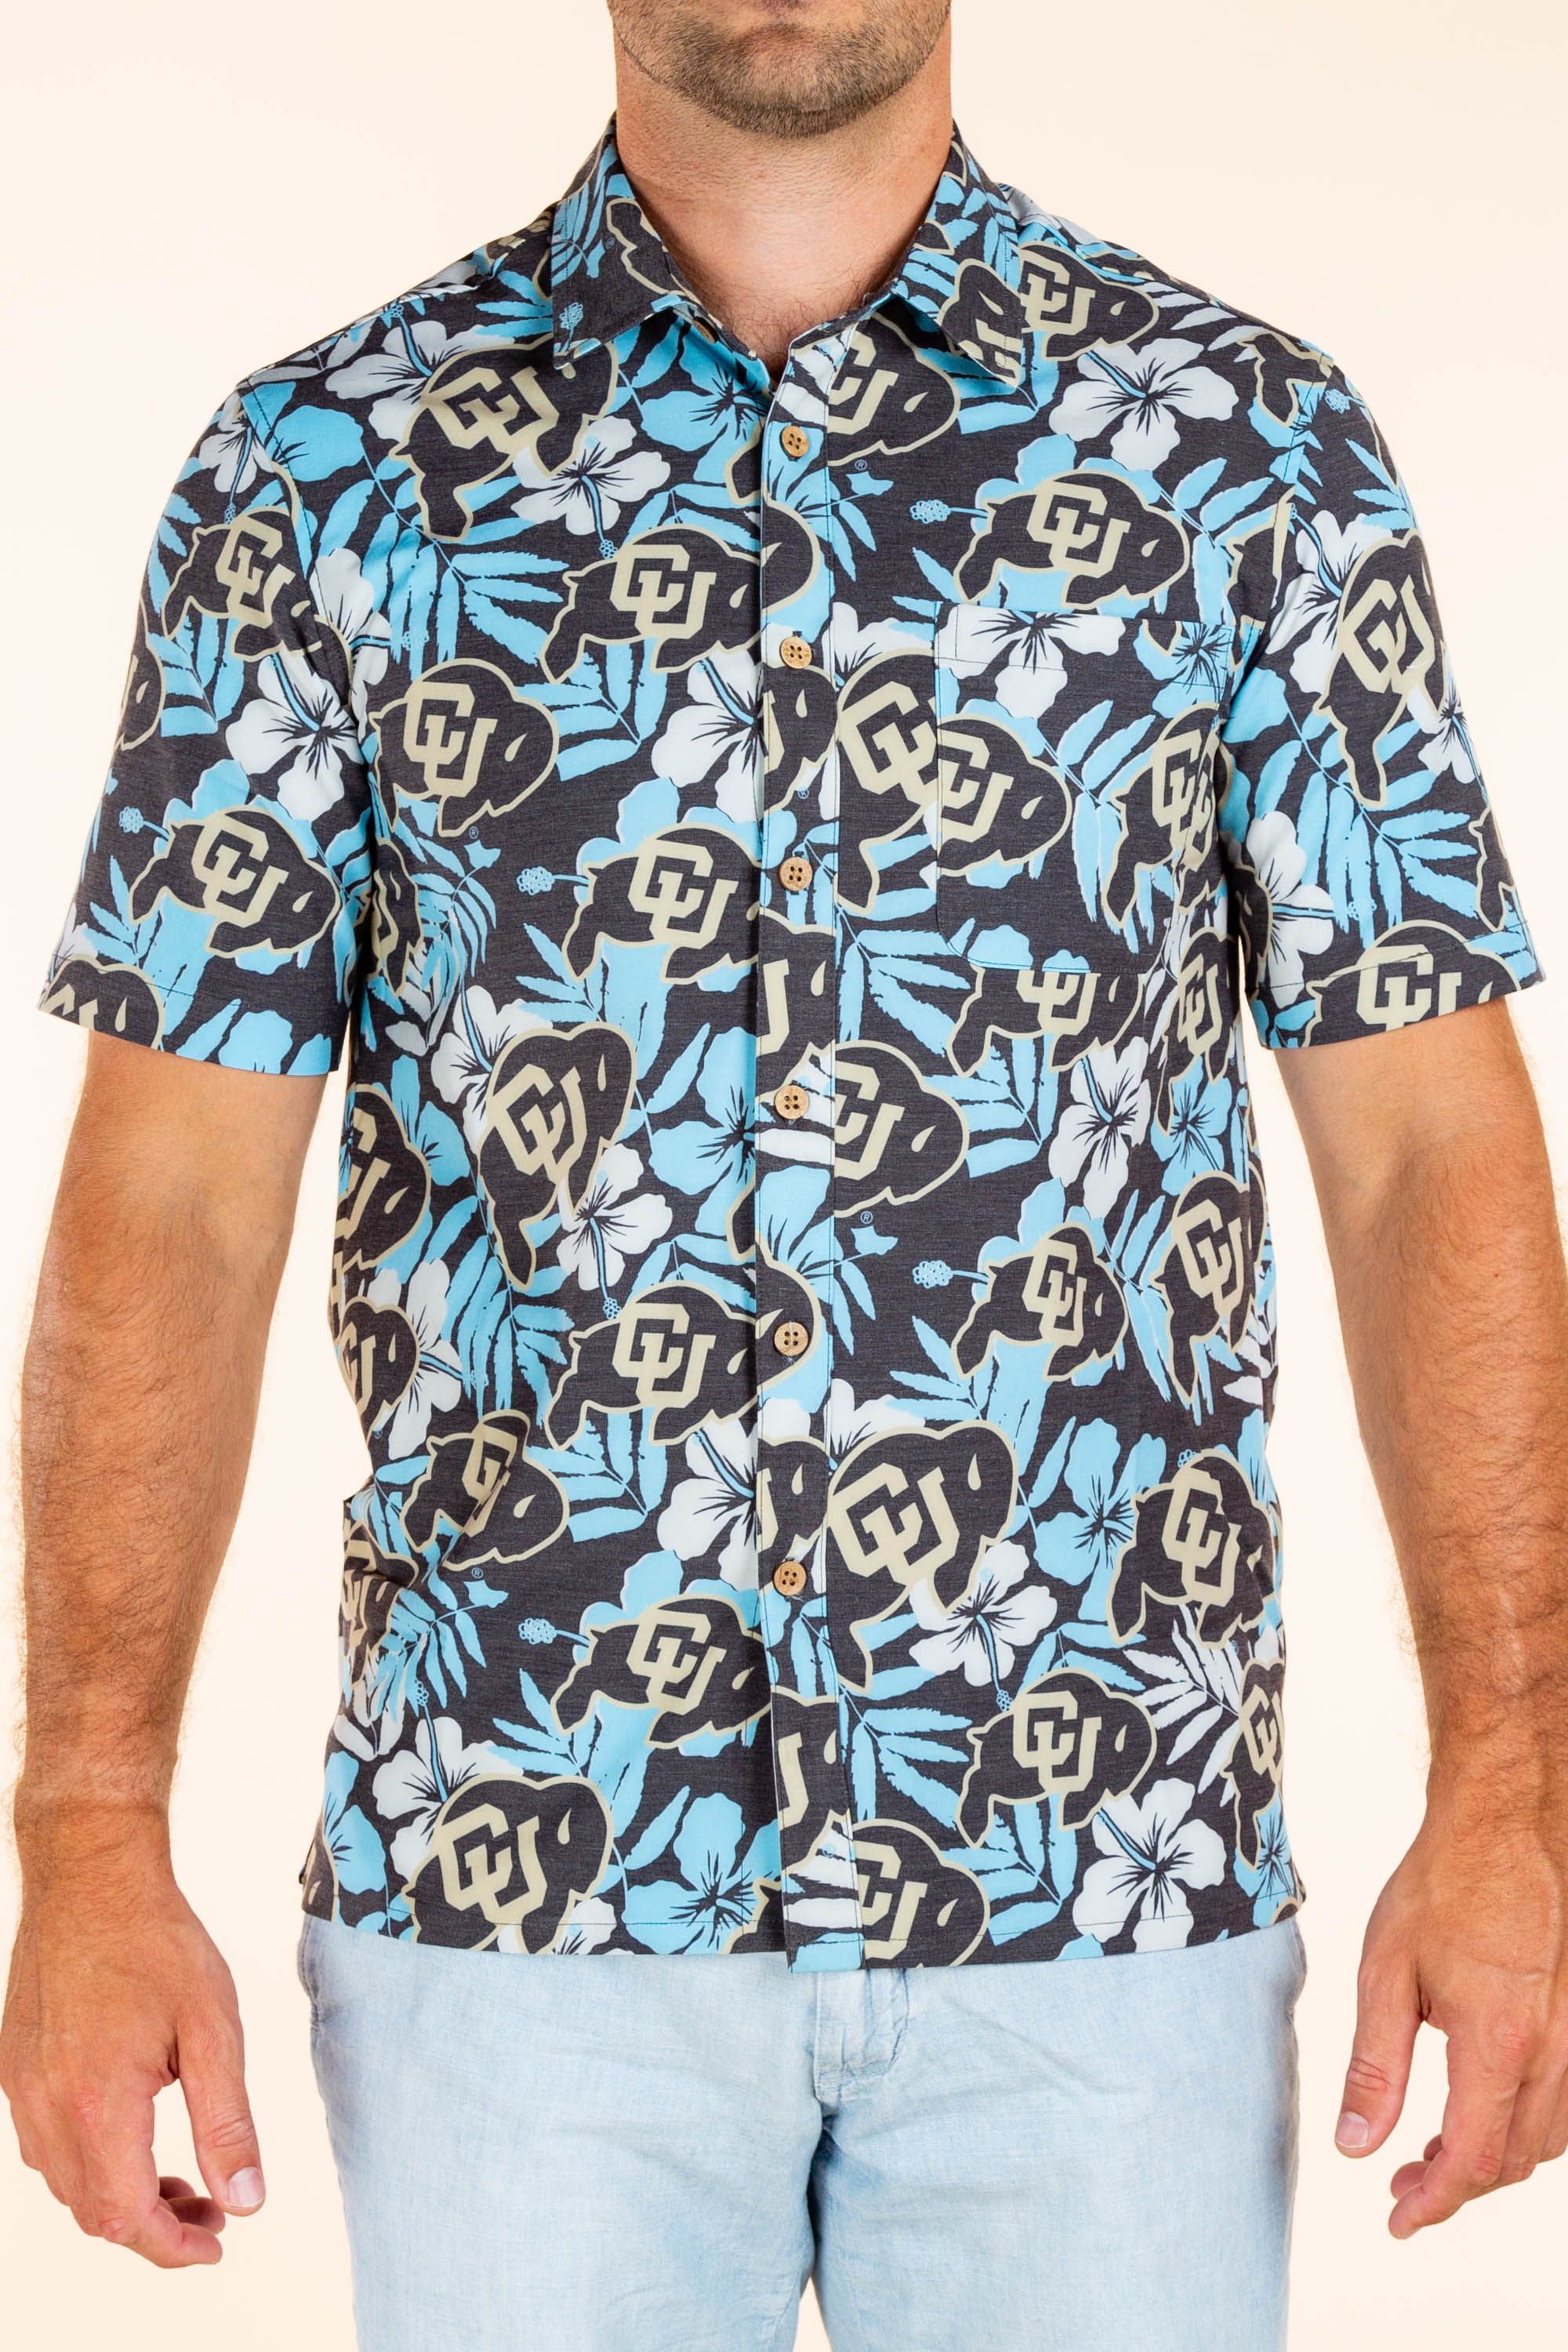 University of Colorado Hawaiian Party Shirt